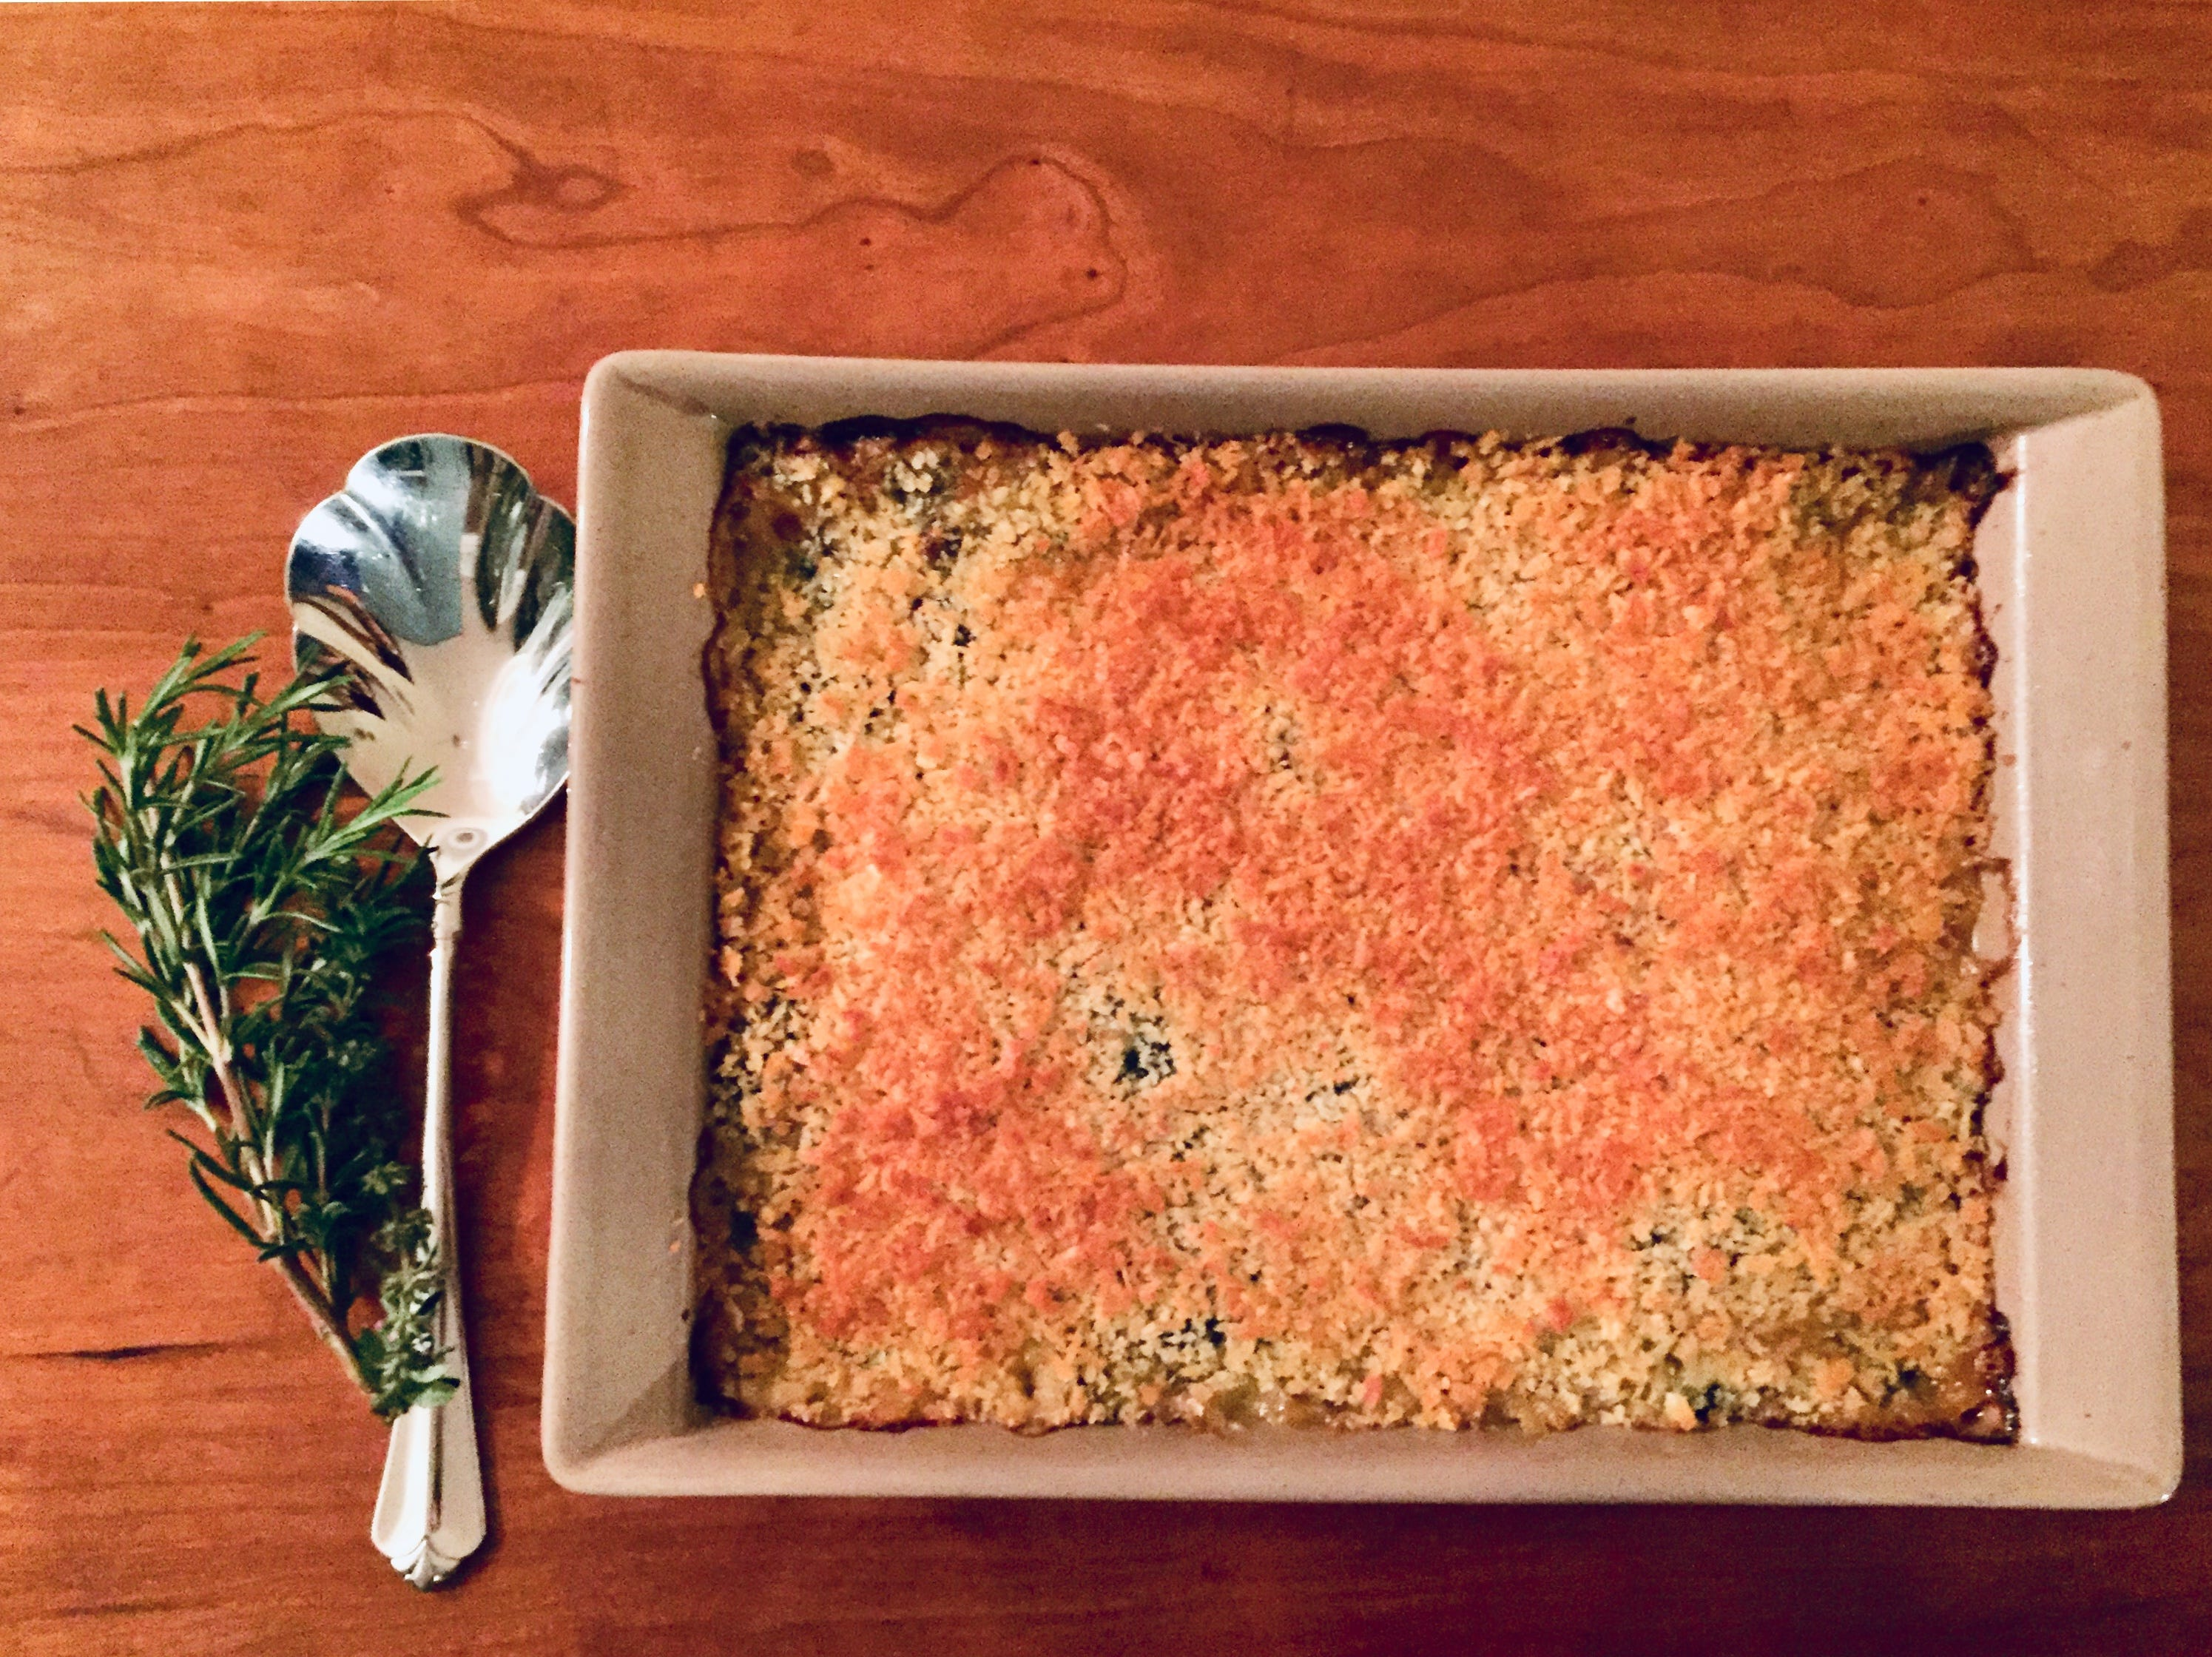 This chard gratin can be made ahead of time to help in your Thanksgiving preparations.